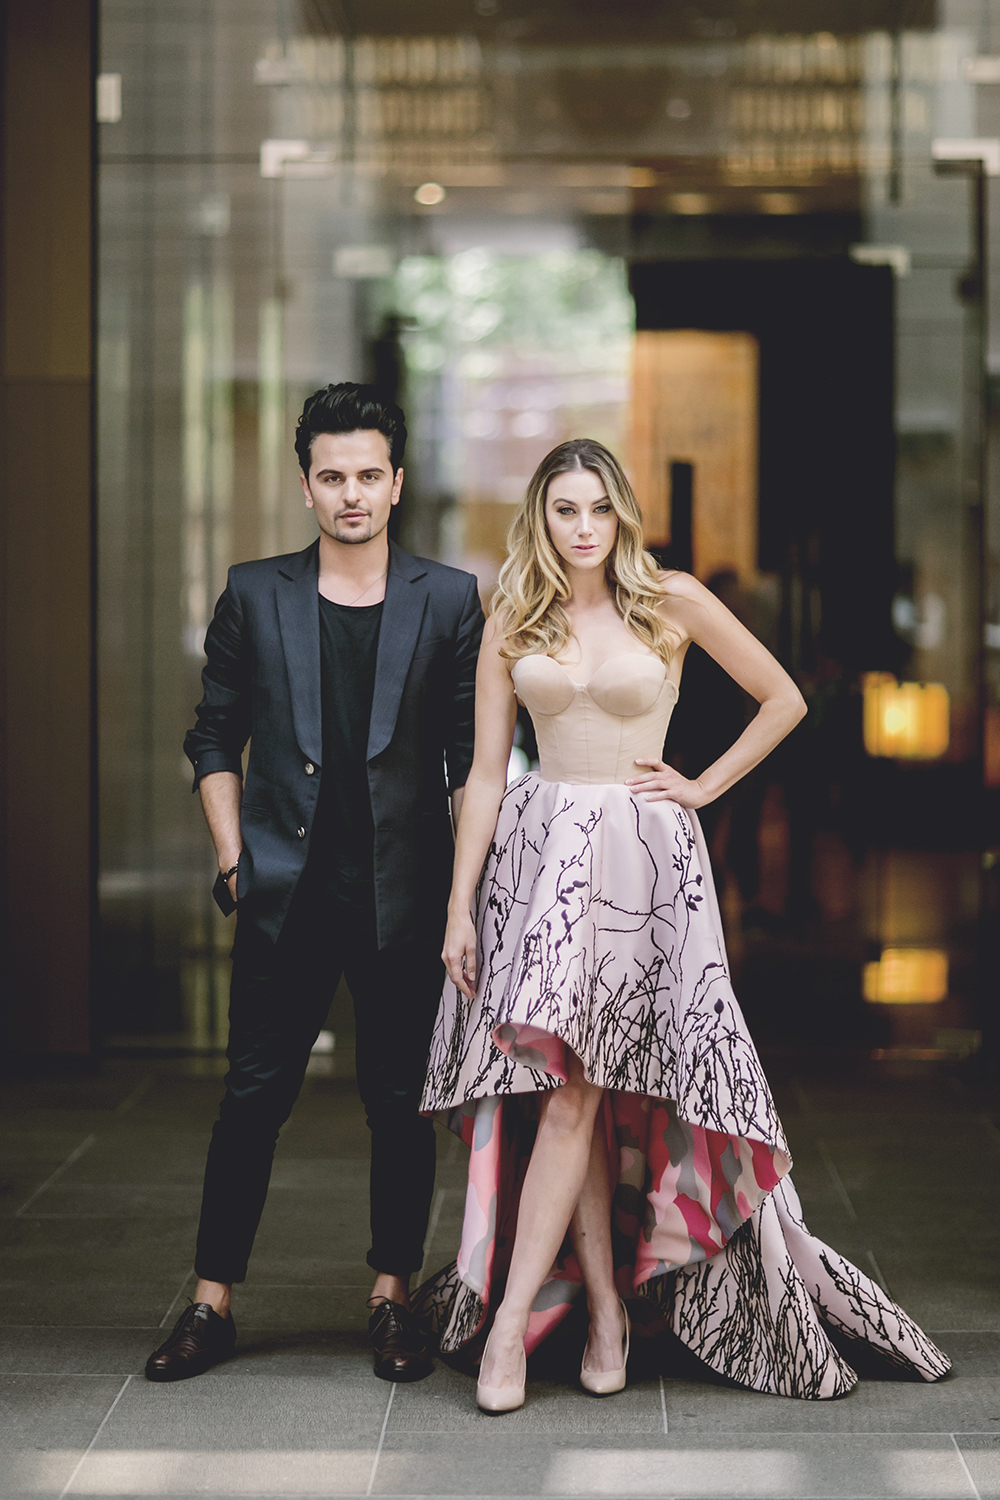 Designer, Con Ilio, and Brooke Meredith in Con Ilio for the Grand Hyatt Melbourne, photographed by Neiyo Sun